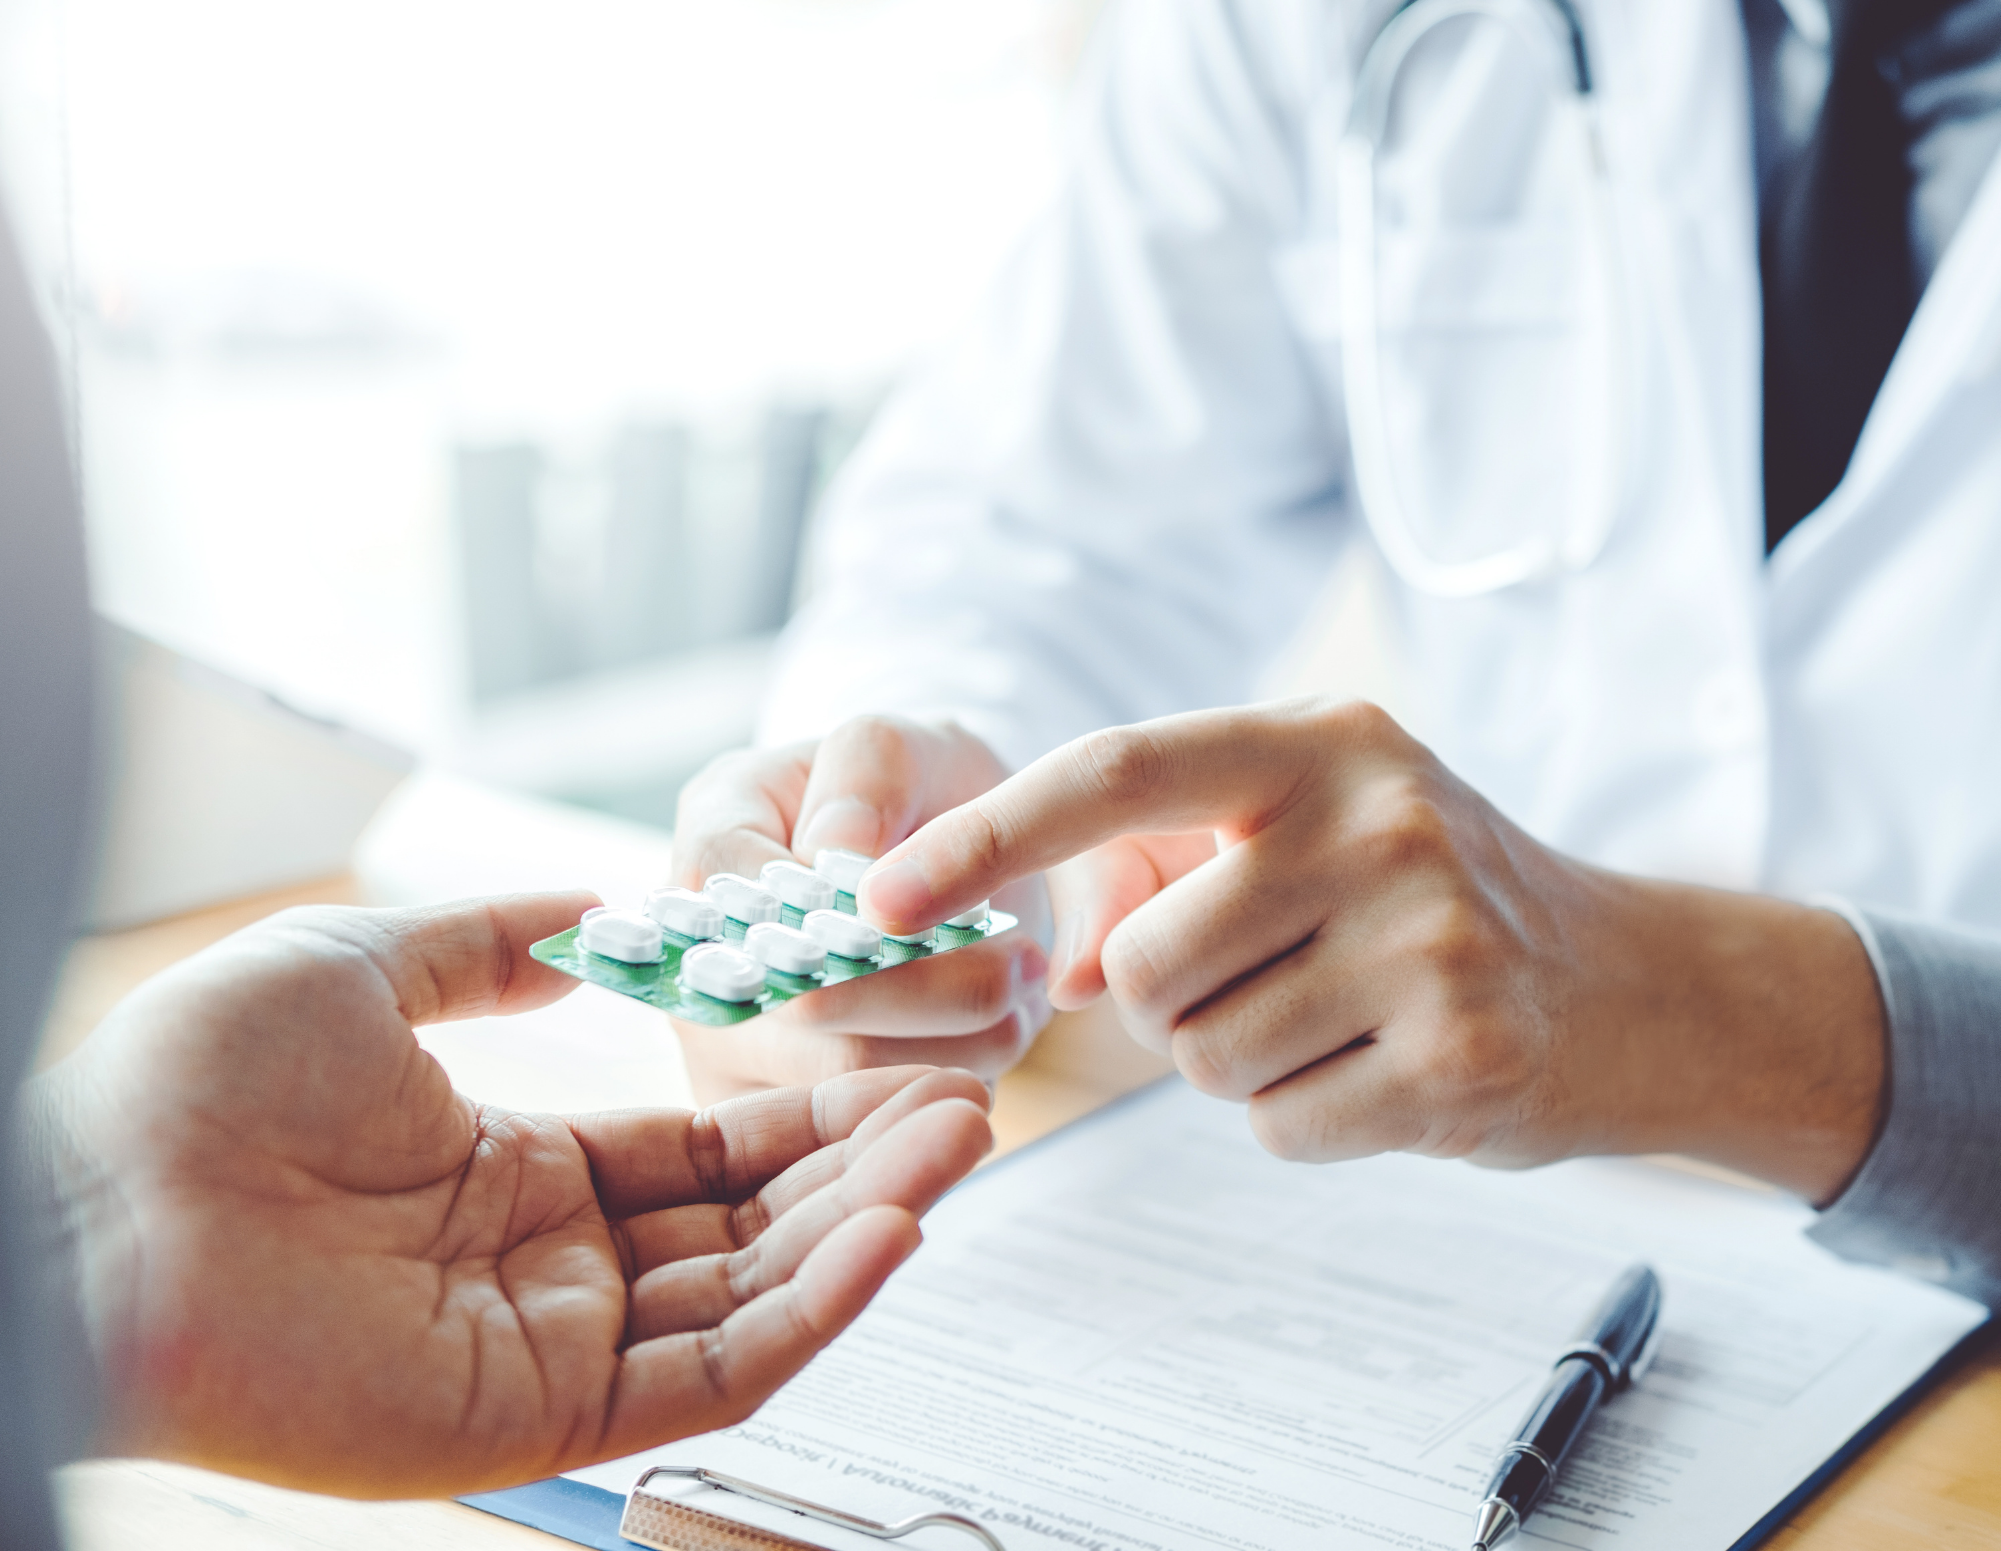 New analysis adds to research questioning whether 340B is working as Congress intended